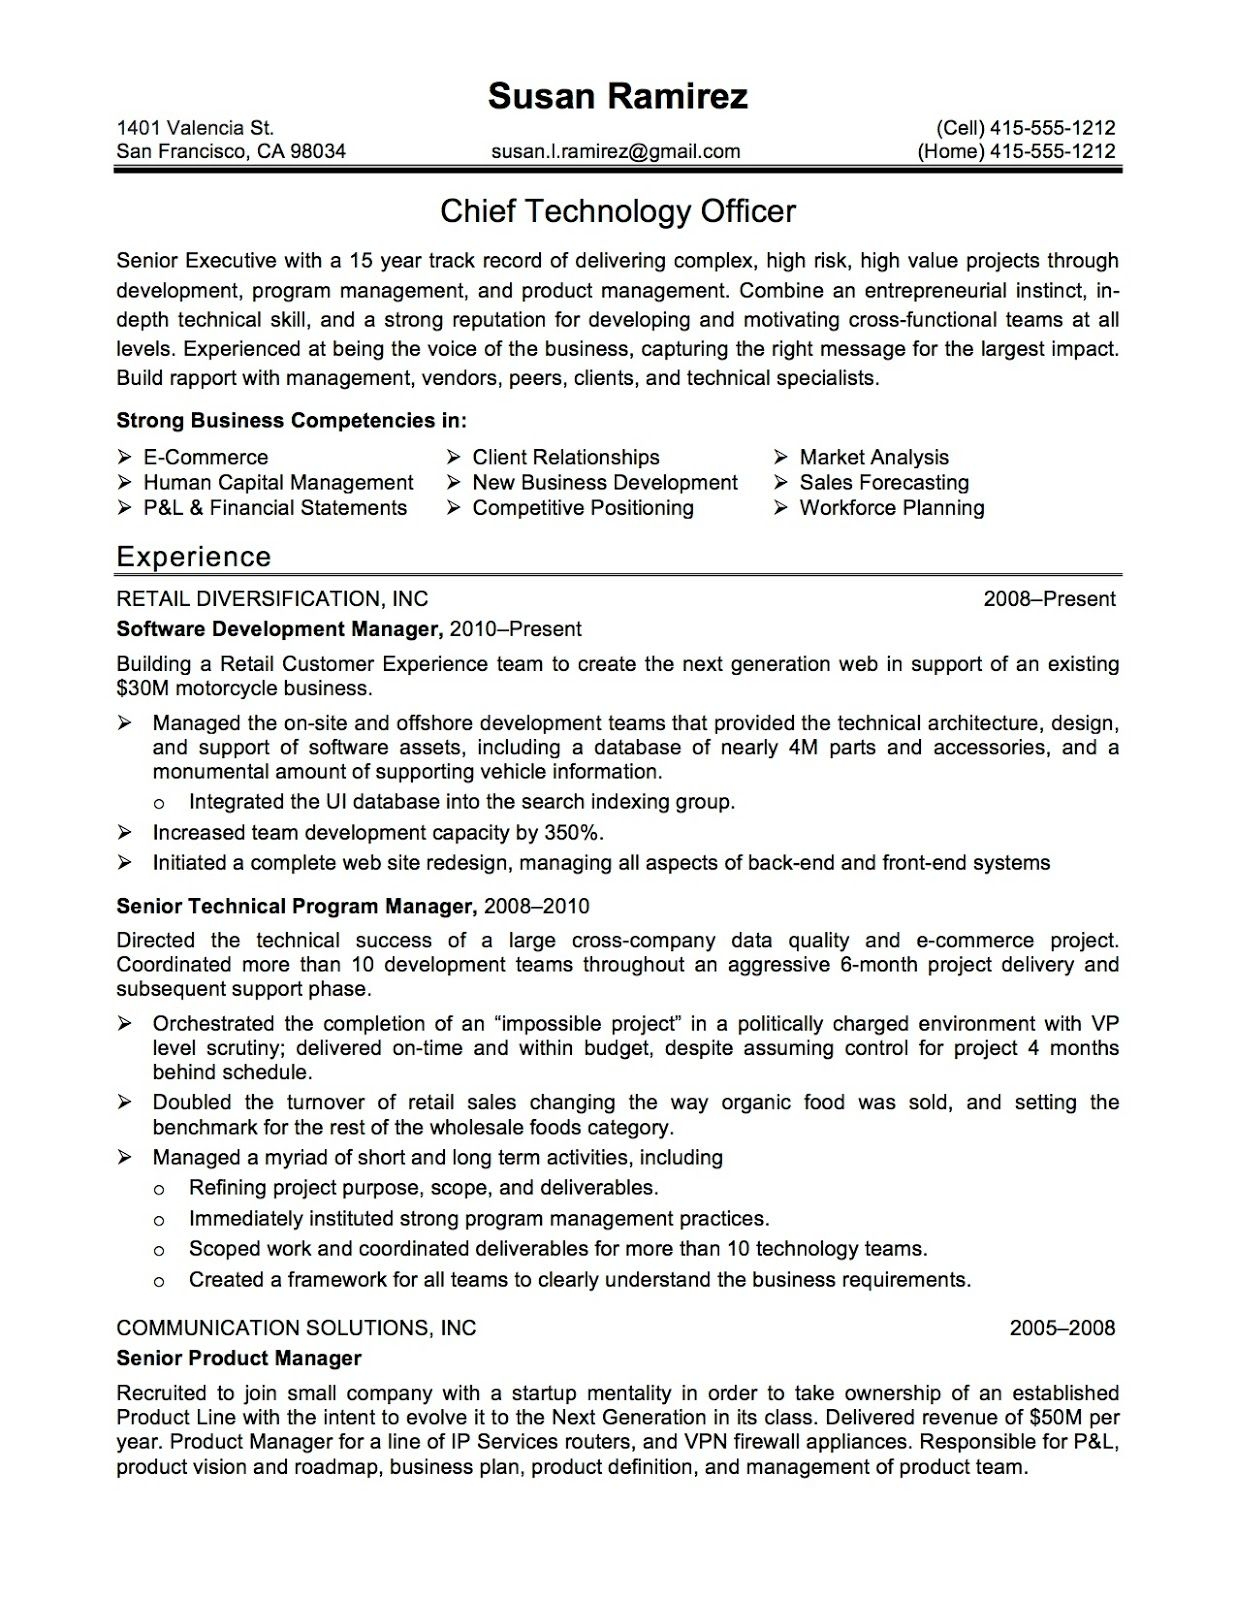 Sample Cto Resume Top Resume Templates  What To Look For  Resume Templates .